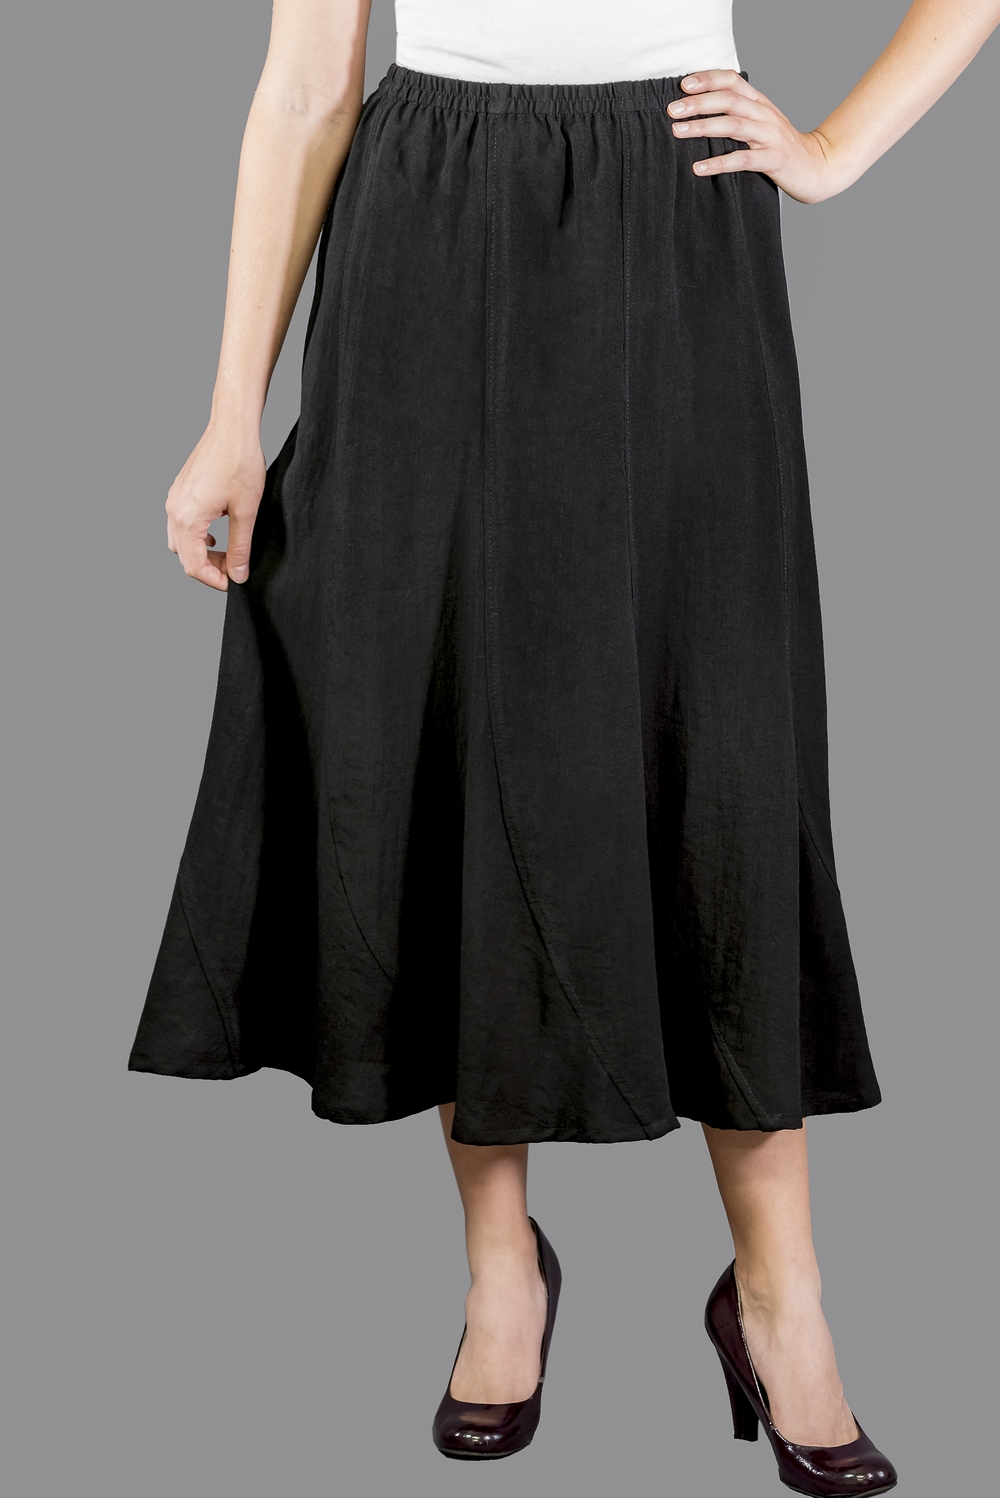 AASK11 - Curved Panels Skirt    CL12 - Black